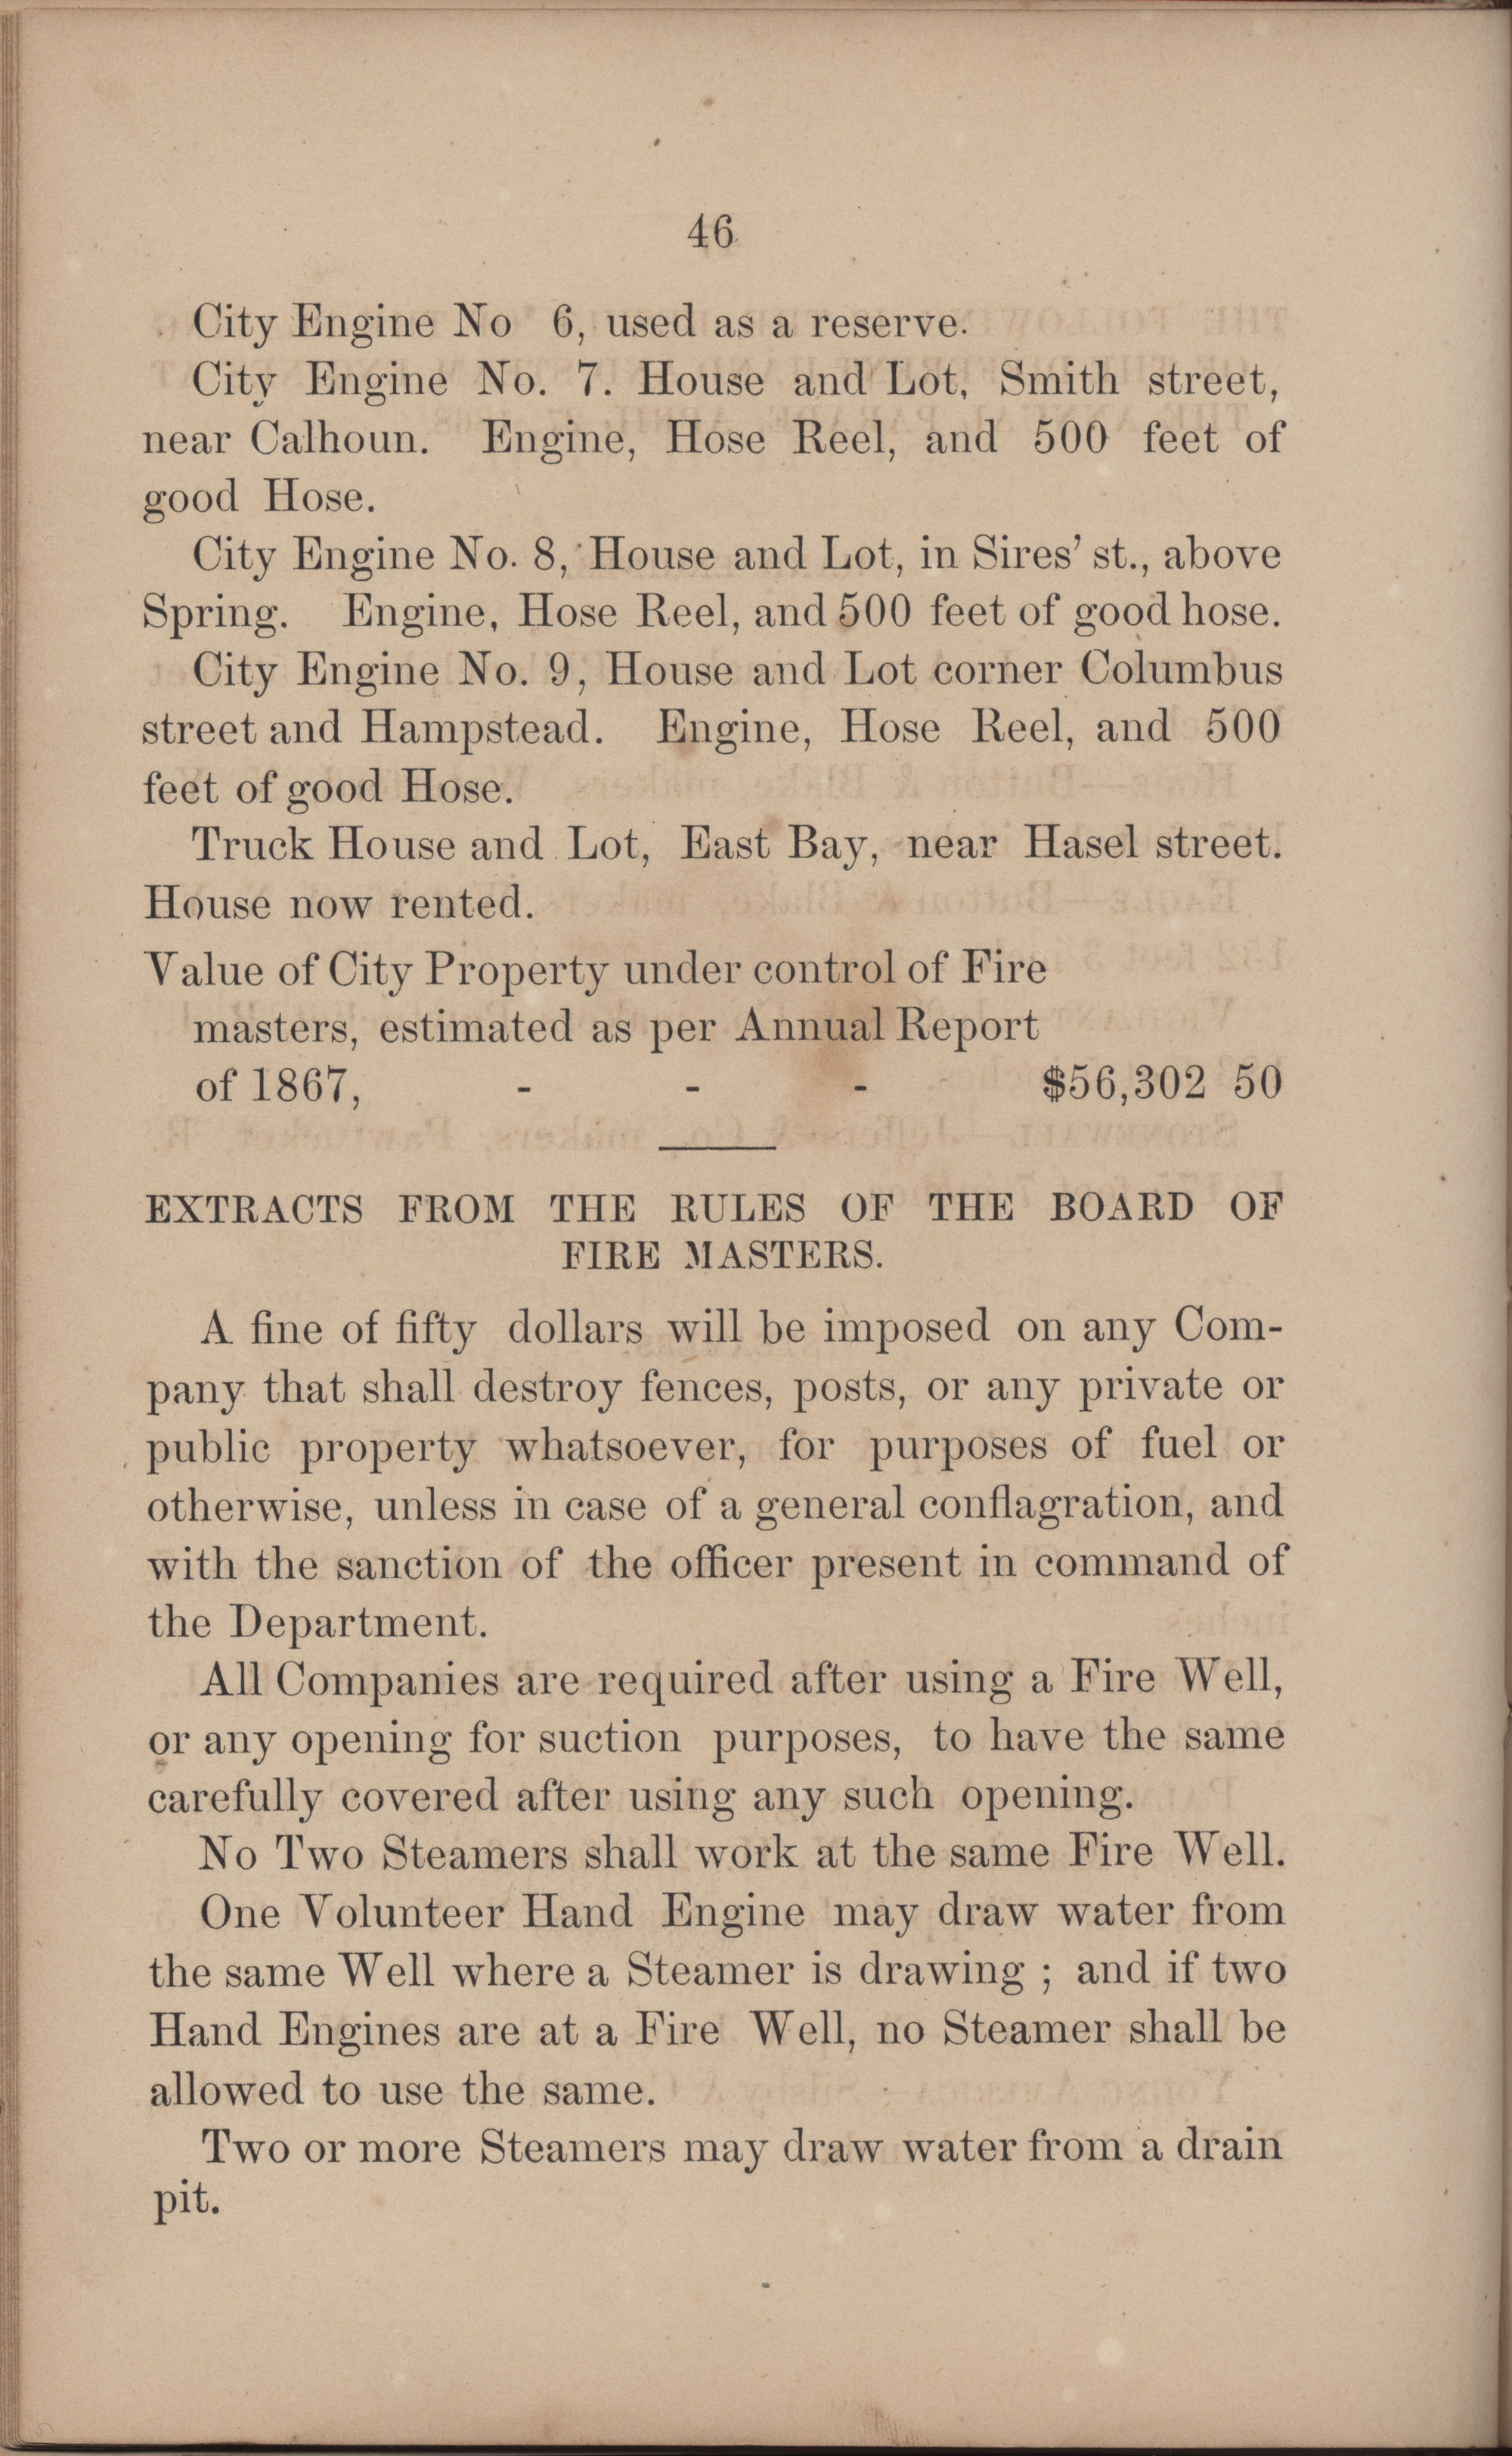 Annual Report of the Chief of the Fire Department of the City of Charleston, page 224